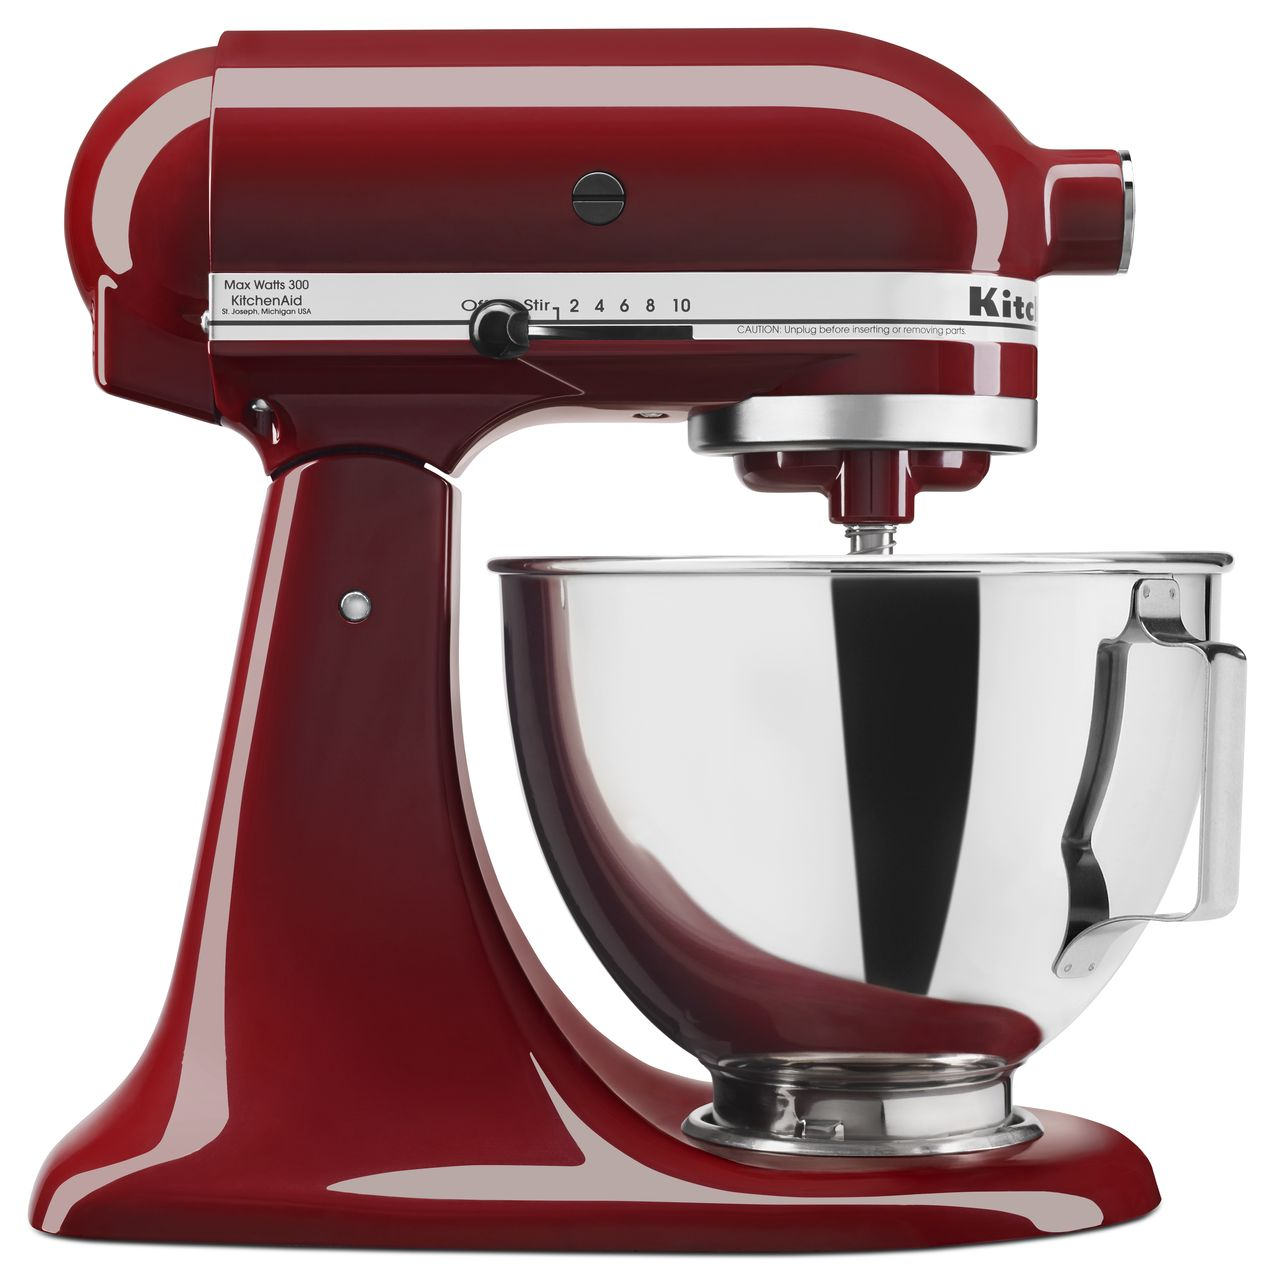 KitchenAid-4-5-quart-Tilt-Head-Stand-Mixer-with-Flex-Edge-Beater-KSM85PSQ thumbnail 11